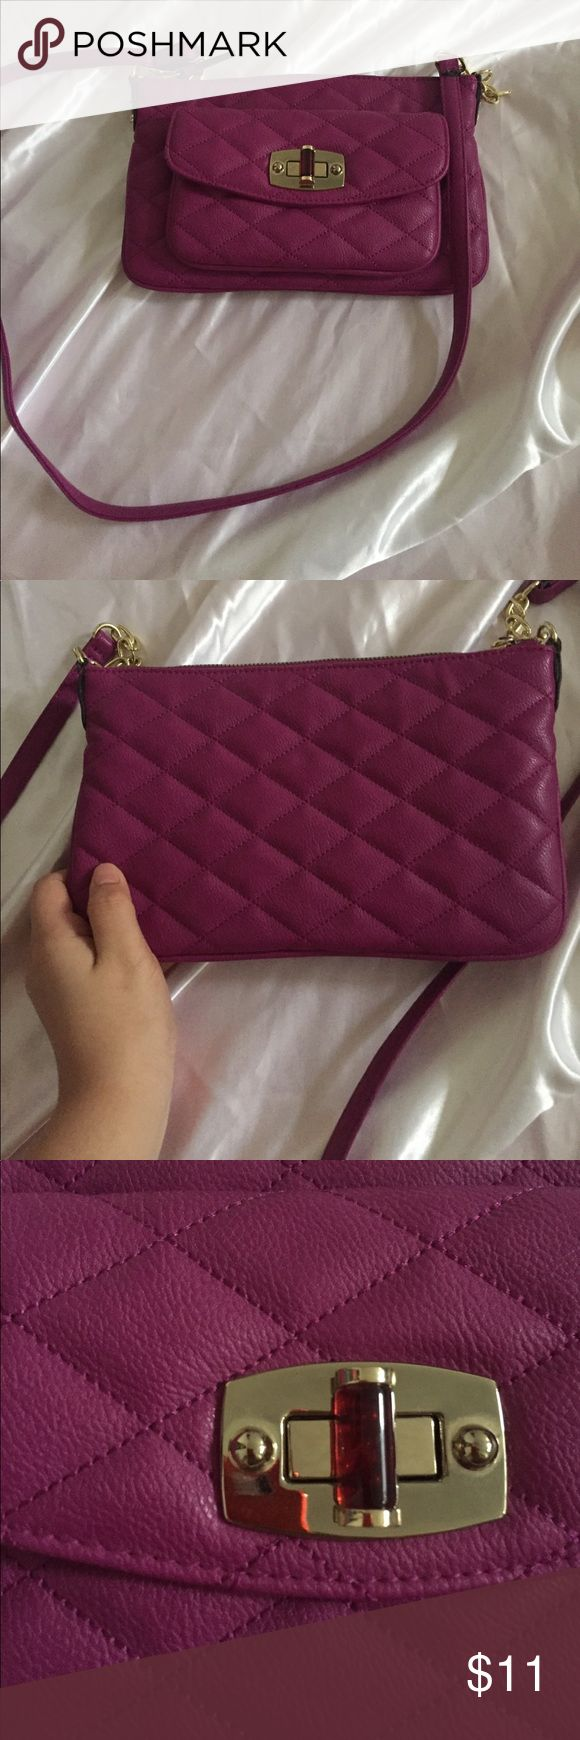 """Purple clutch purse Pretty purple clutch like crossbody bag 💜💜💜 Bought a year ago but never actually wore it. Quilt looking texture Measurements: 10"""" across , 6"""" length , straps 23"""" from base Merona Bags Crossbody Bags"""